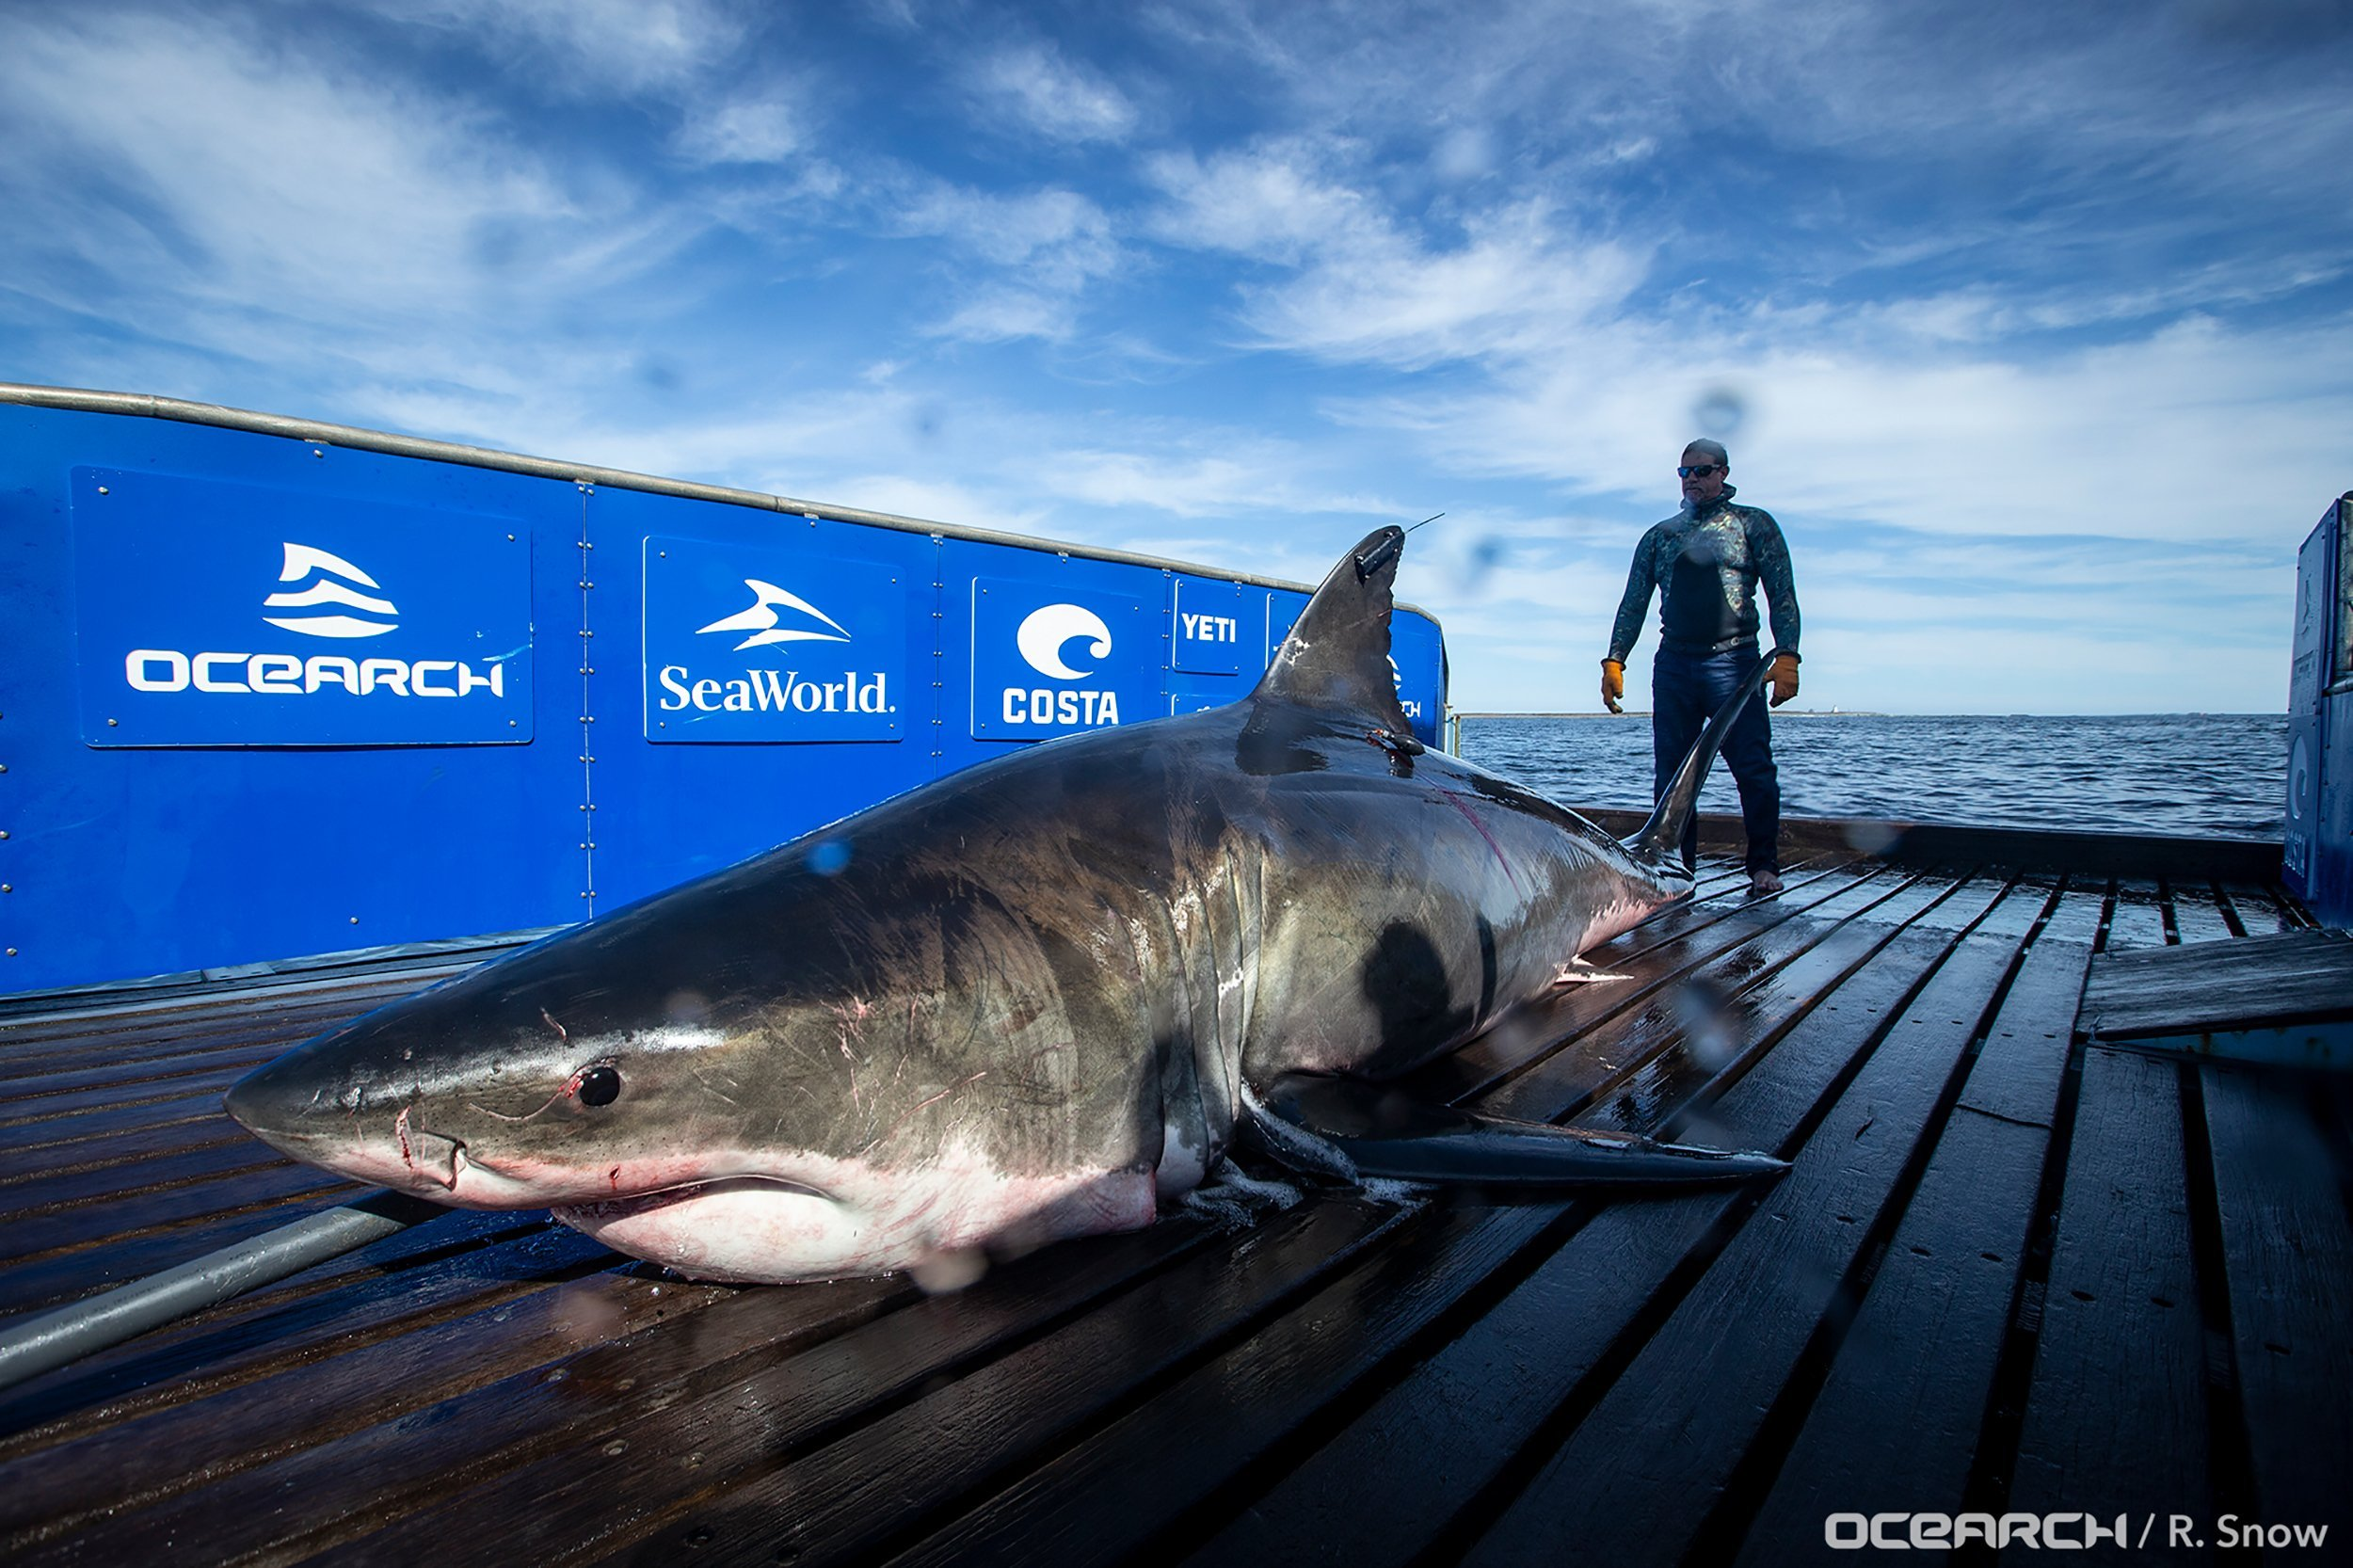 A shark-tracking app showed 6 great whites off Florida's coast. Experts say 'tis the season